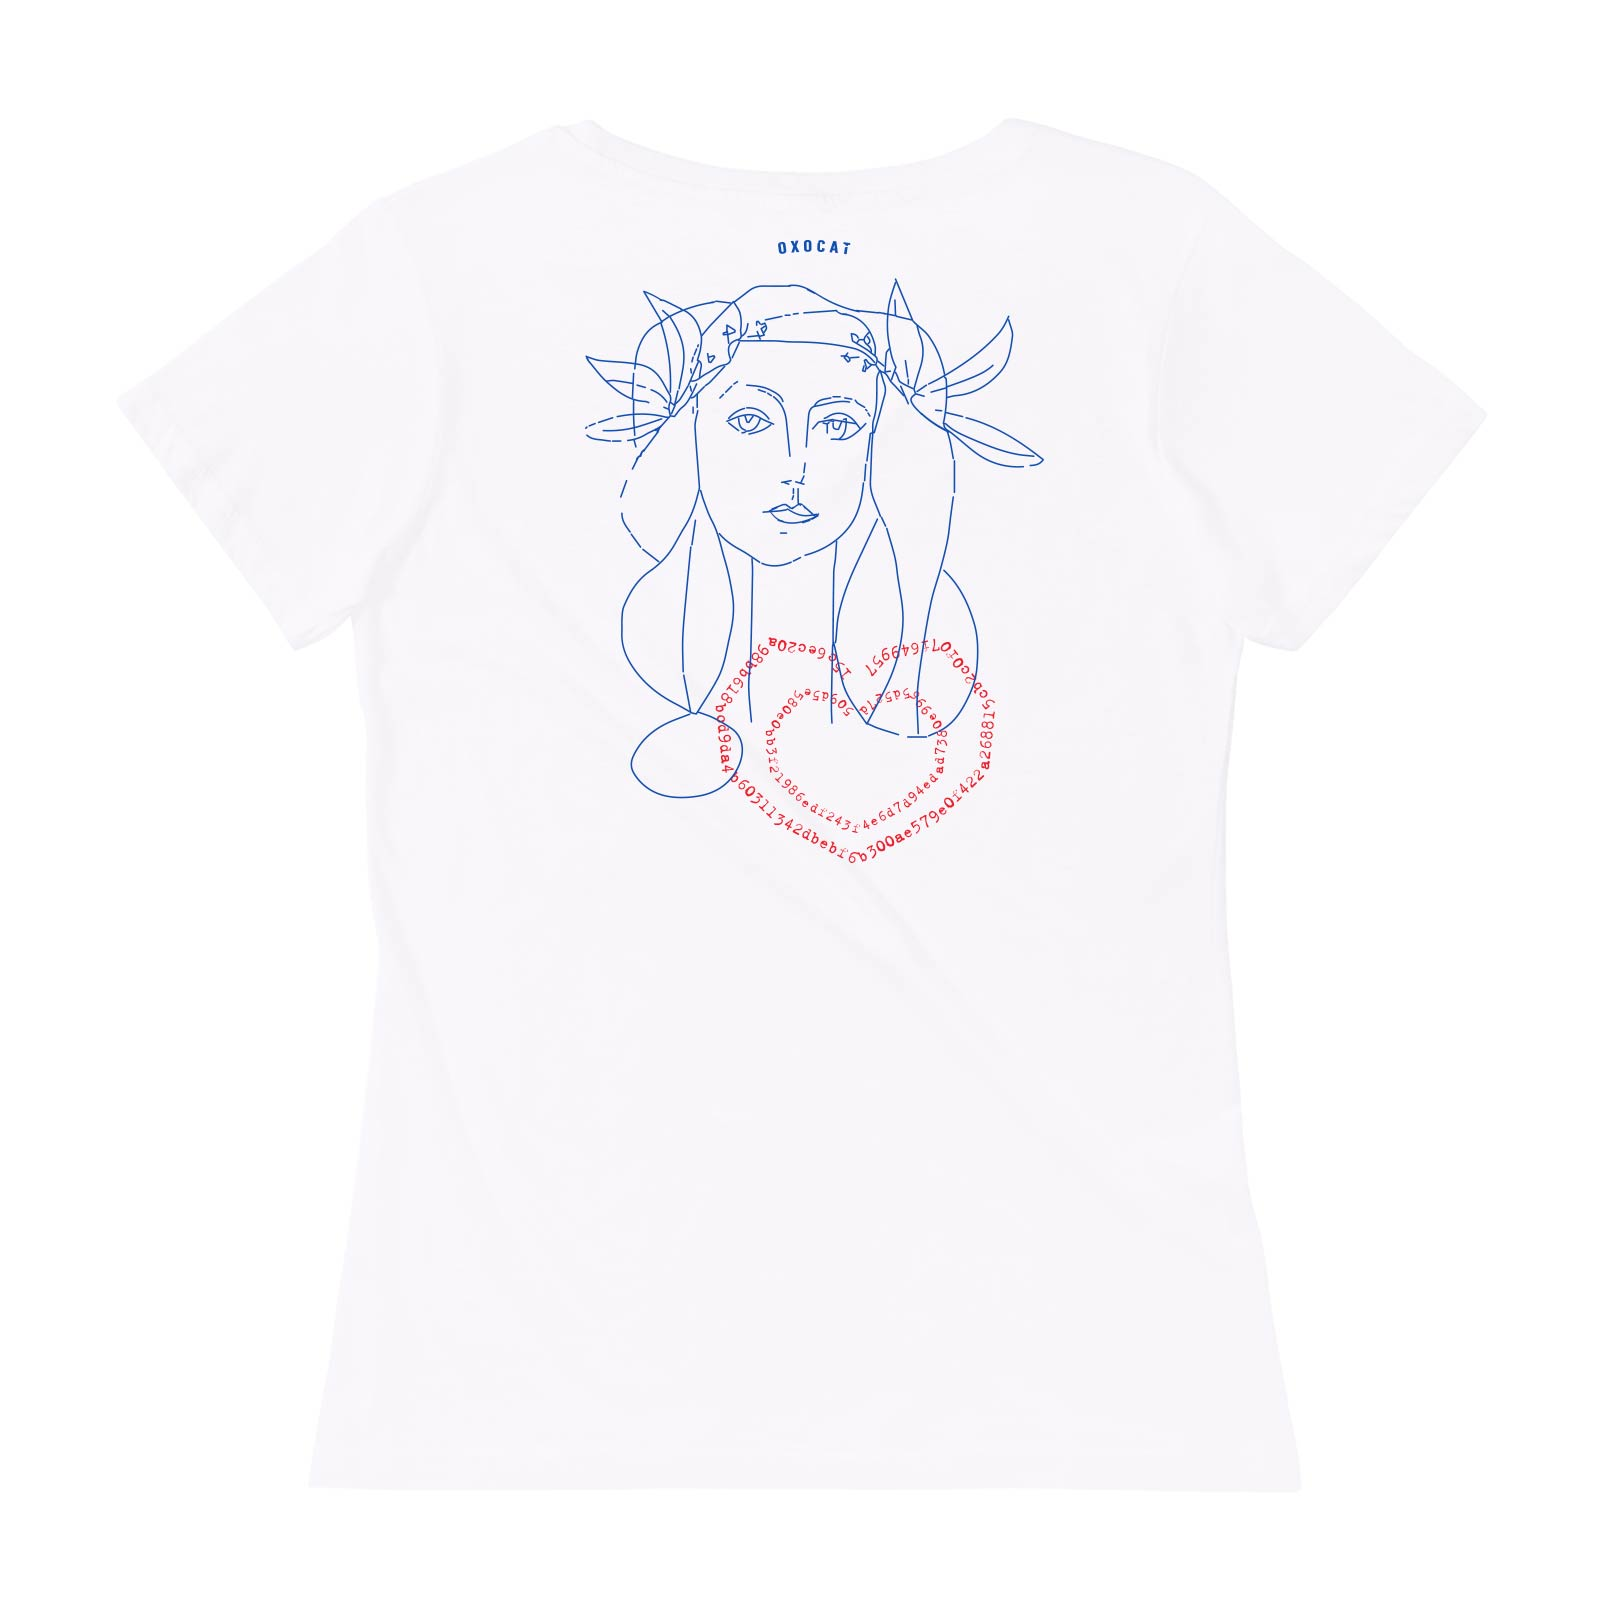 SHE-3 encrypted heart. On the back line drawn lady with the SHA-3(Keccak) encrypted text '0X0CAT' in heart shapes. Logo shown in the neck area.